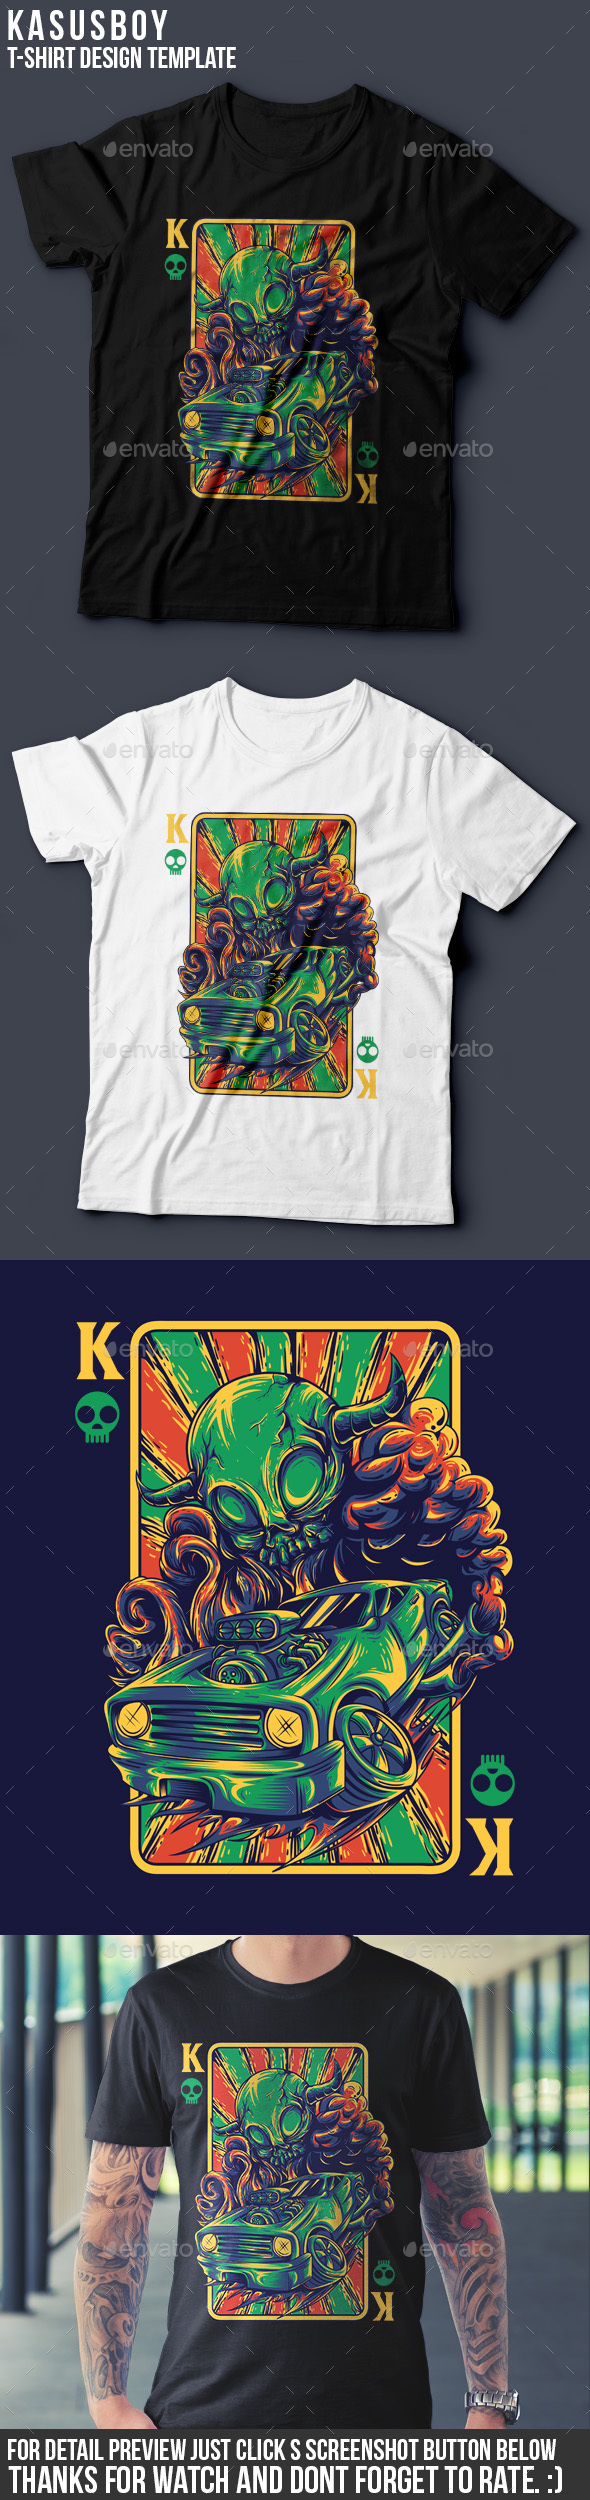 Kasusboy! T-Shirt Design